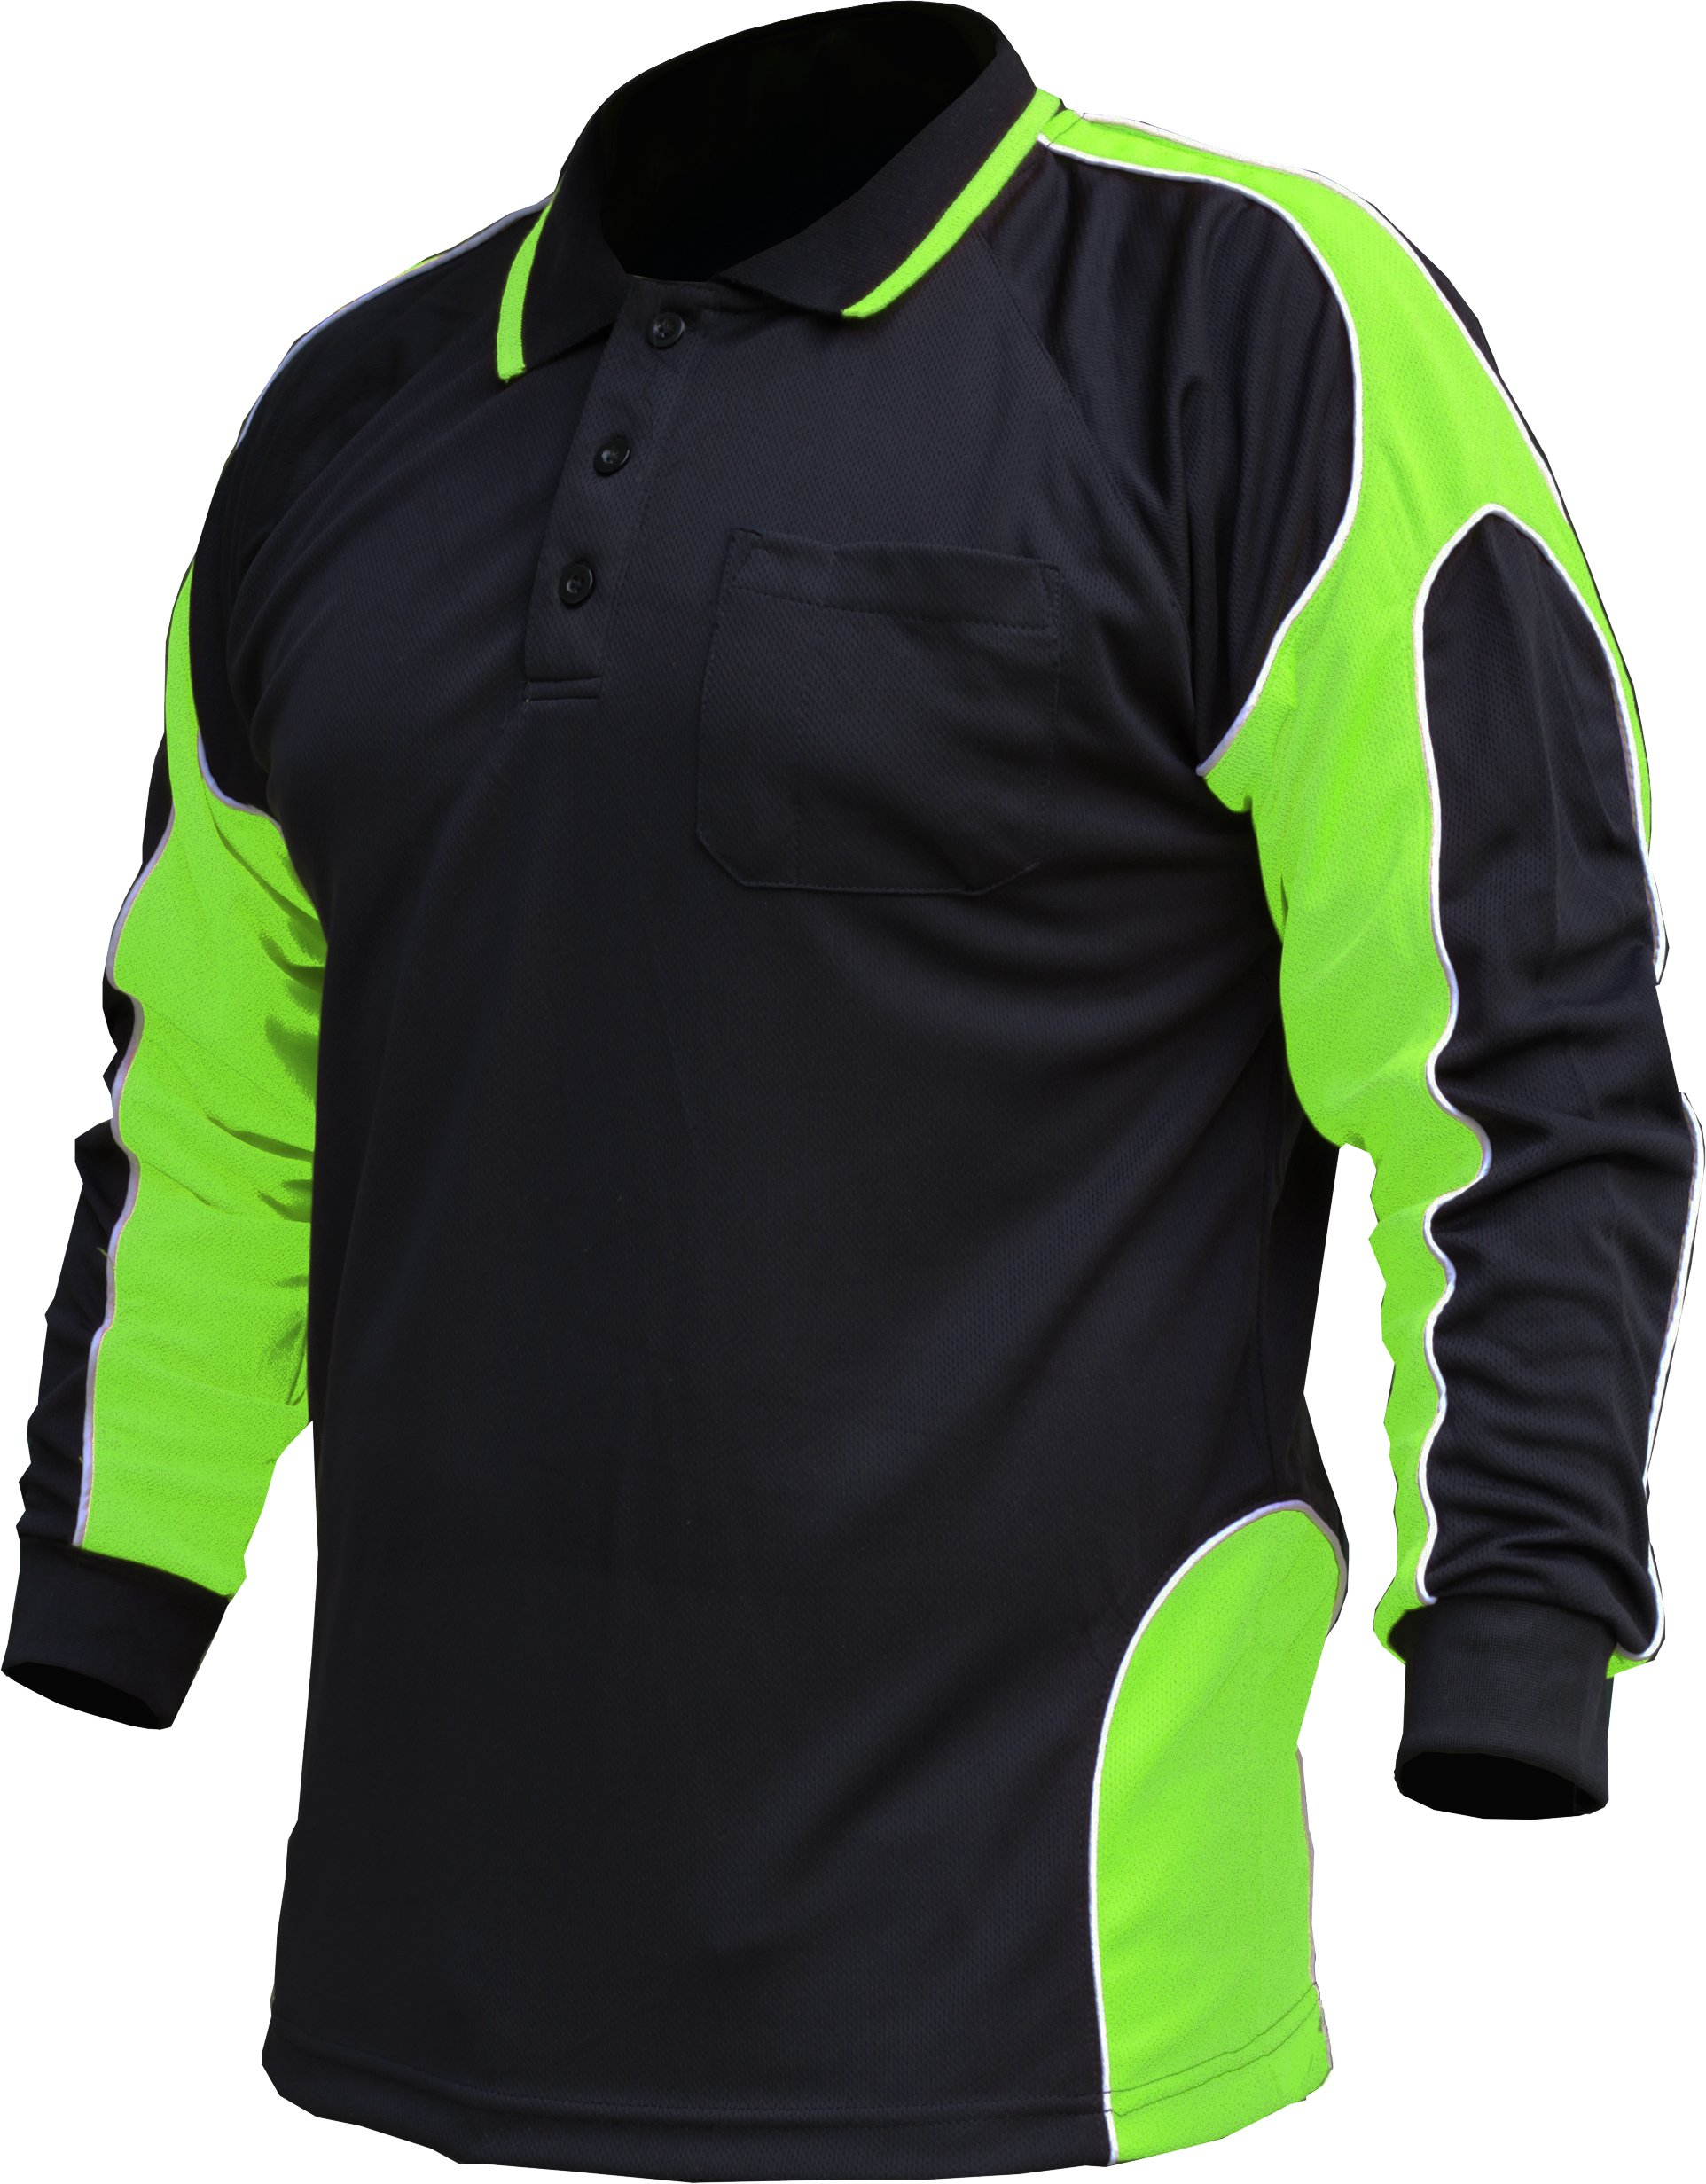 BIG BEE Hi Vis Polo Shirt Arm Panel with Piping Fluoro Work wear Cool Dry Long Sleeve (Pack of 2) by BIG BEE (Image #1)